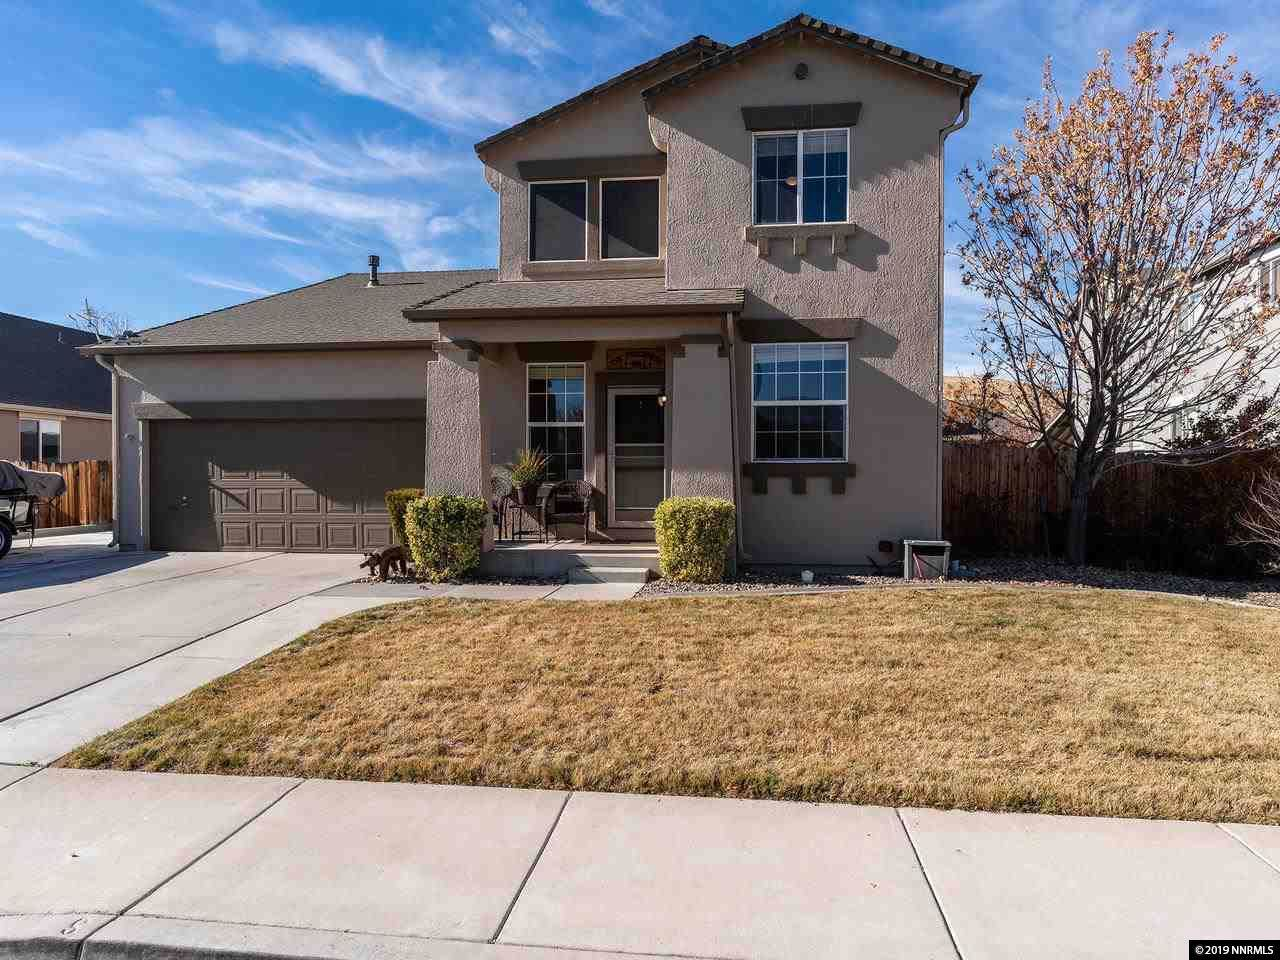 5855 Sonora Pass Dr - Photo 1